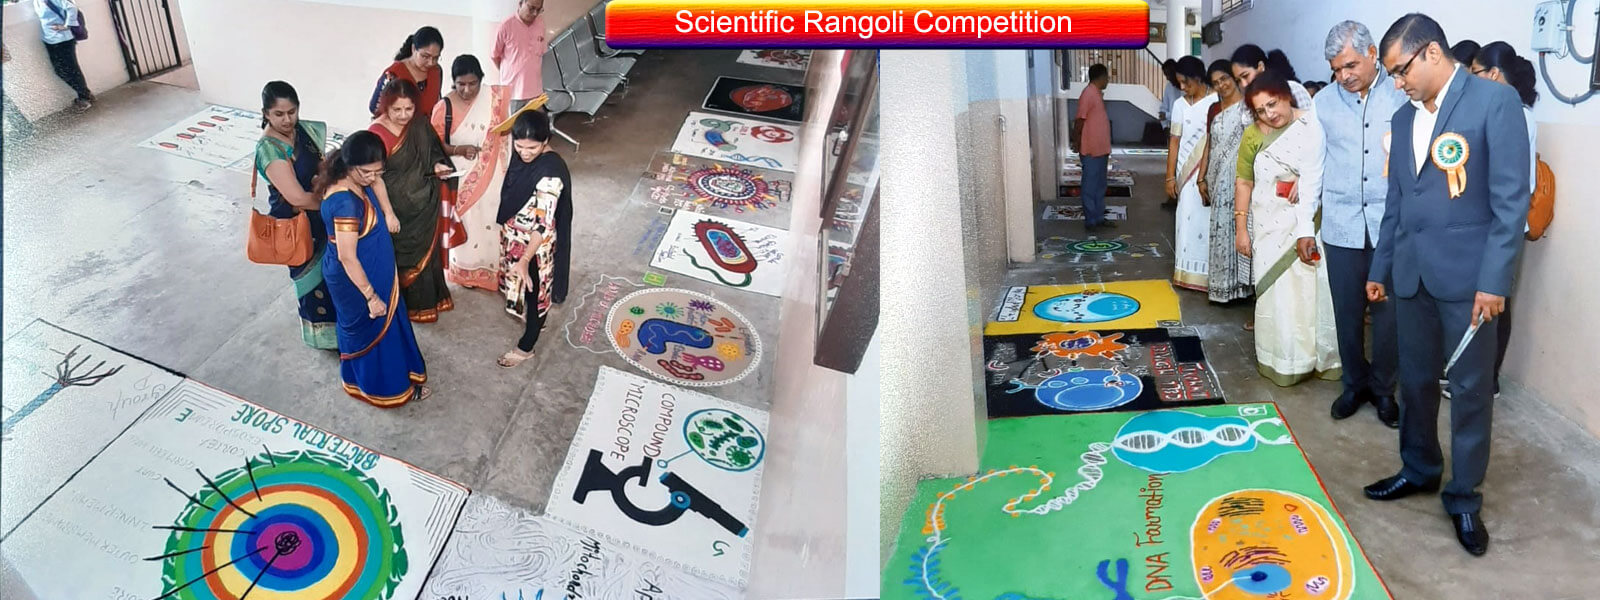 Scientific-Rangoli-Competi2